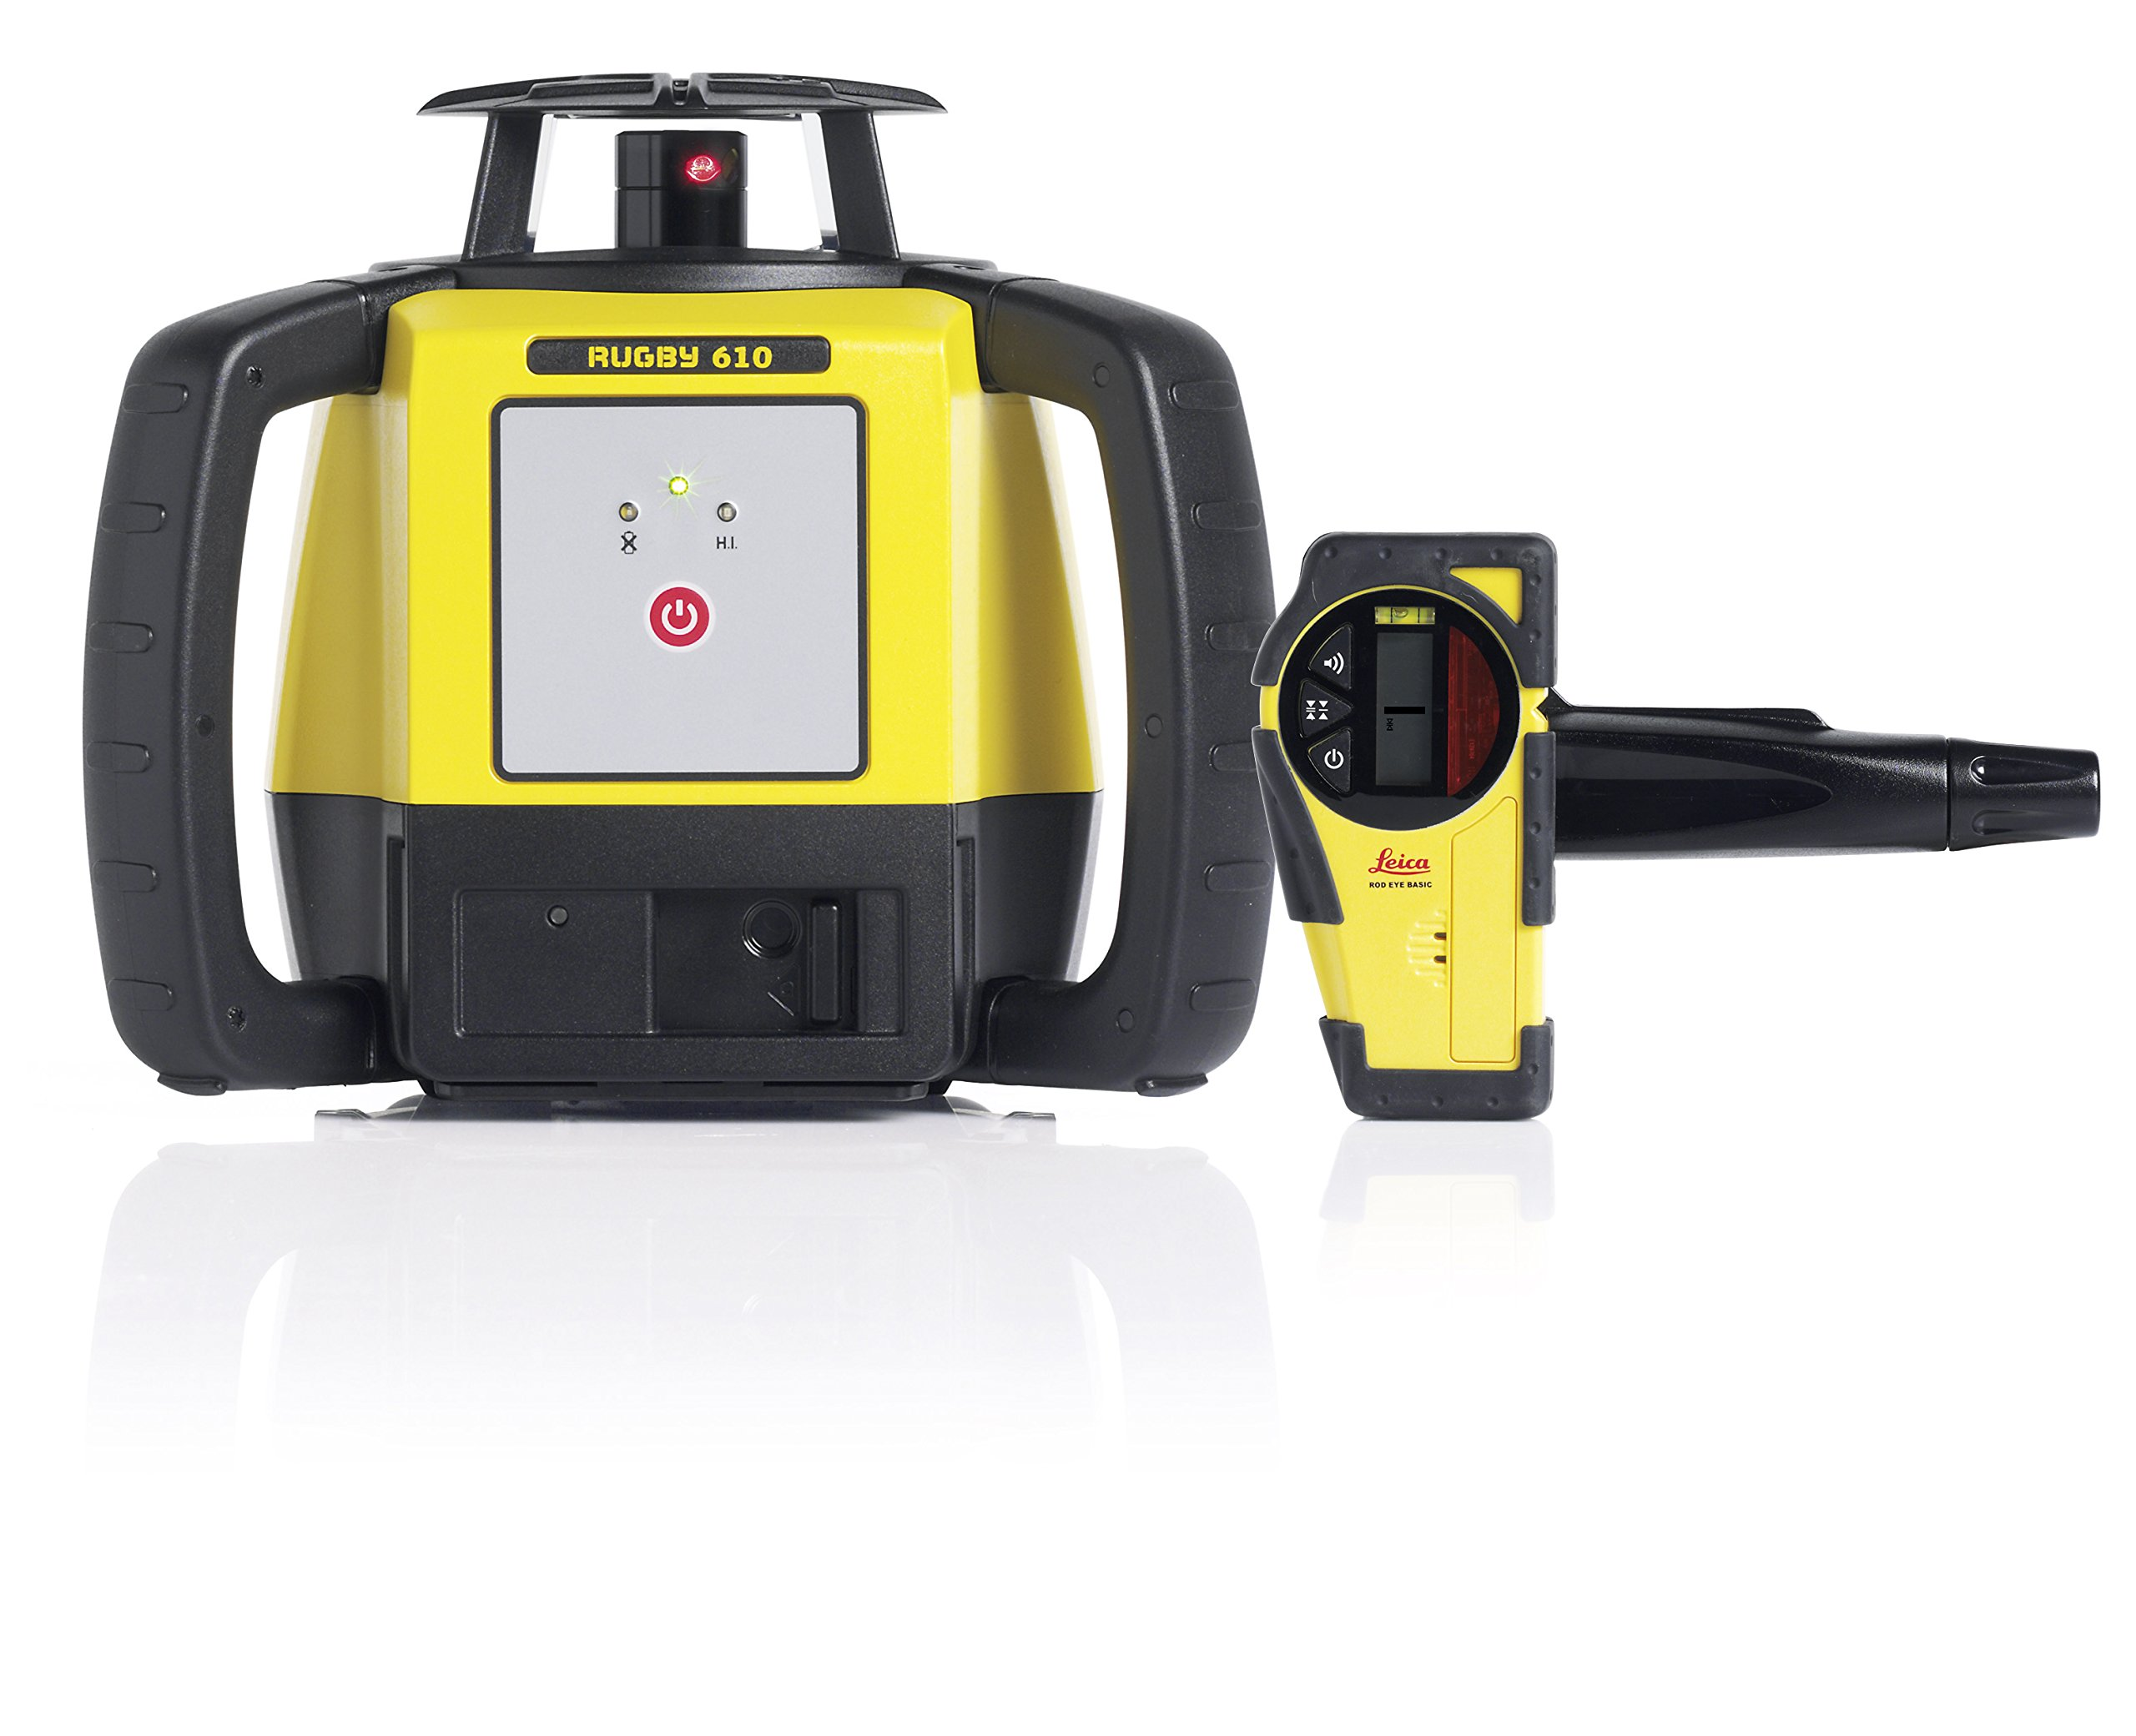 Leica Rugby 610 1650ft Self Leveling Rotating Laser Kit with Rod Eye Basic Receiver